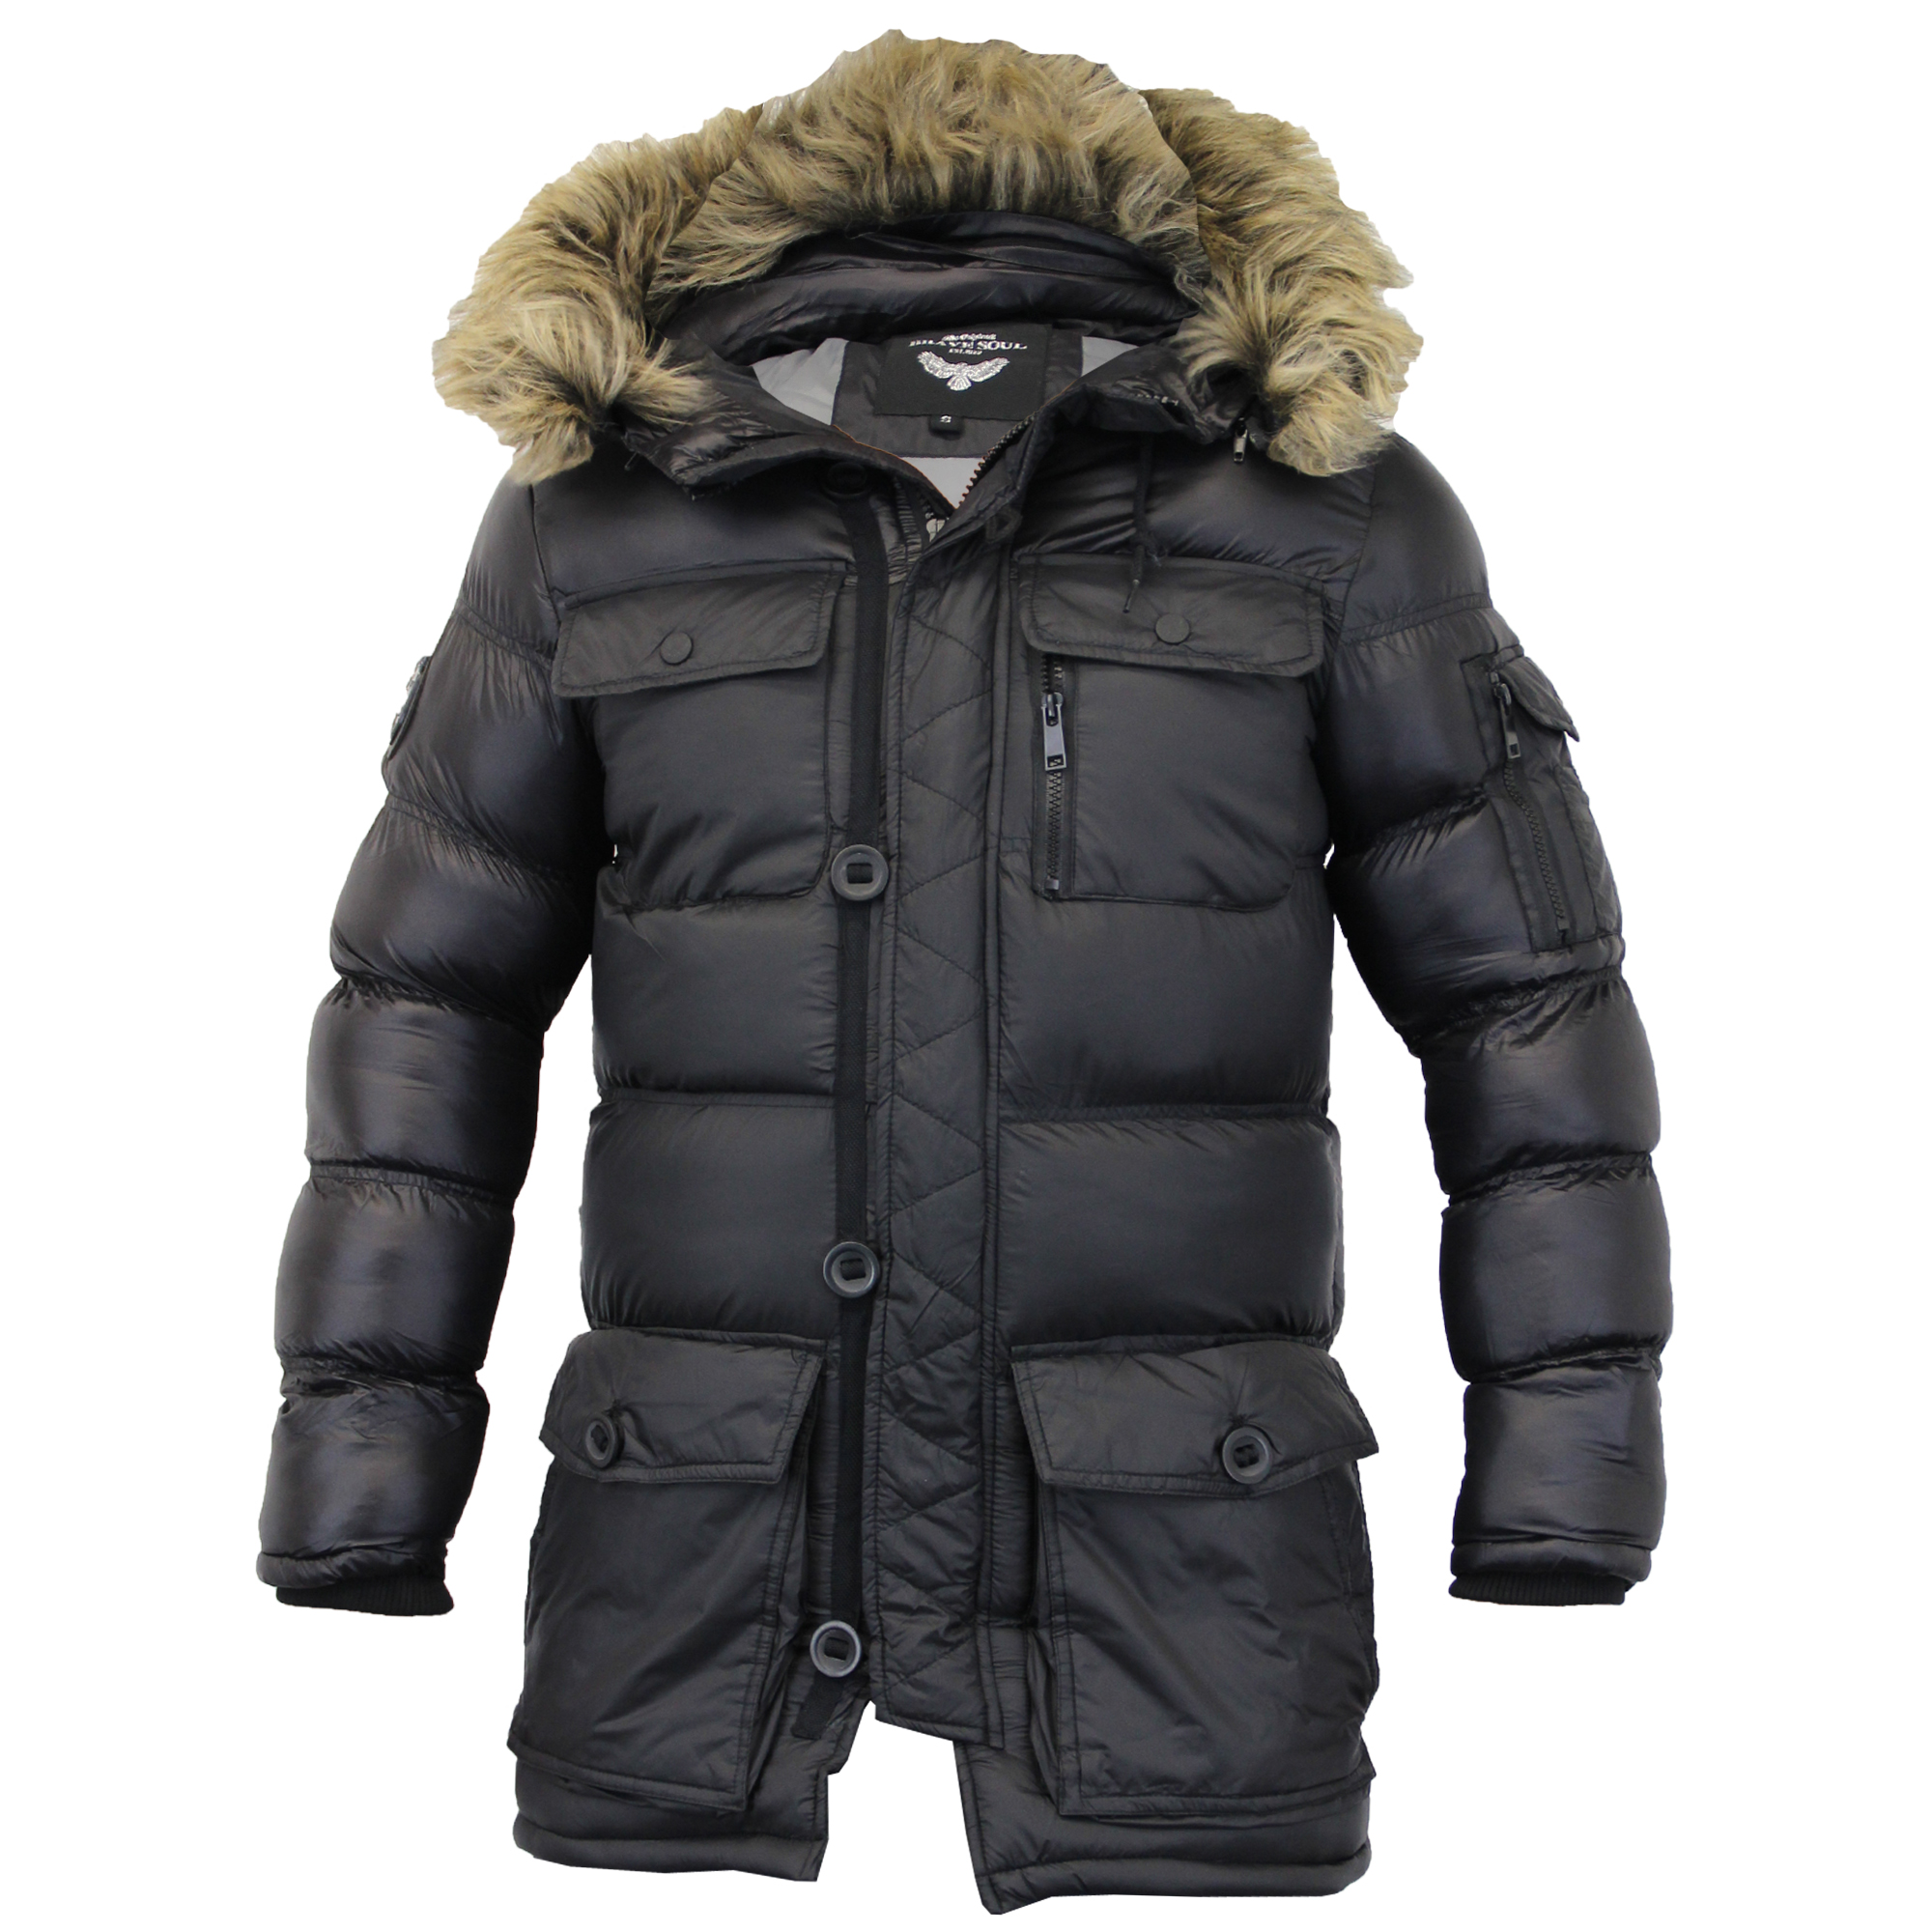 Mens Parka Jacket With Fur Hood | Jackets Review : mens quilted hooded jacket - Adamdwight.com